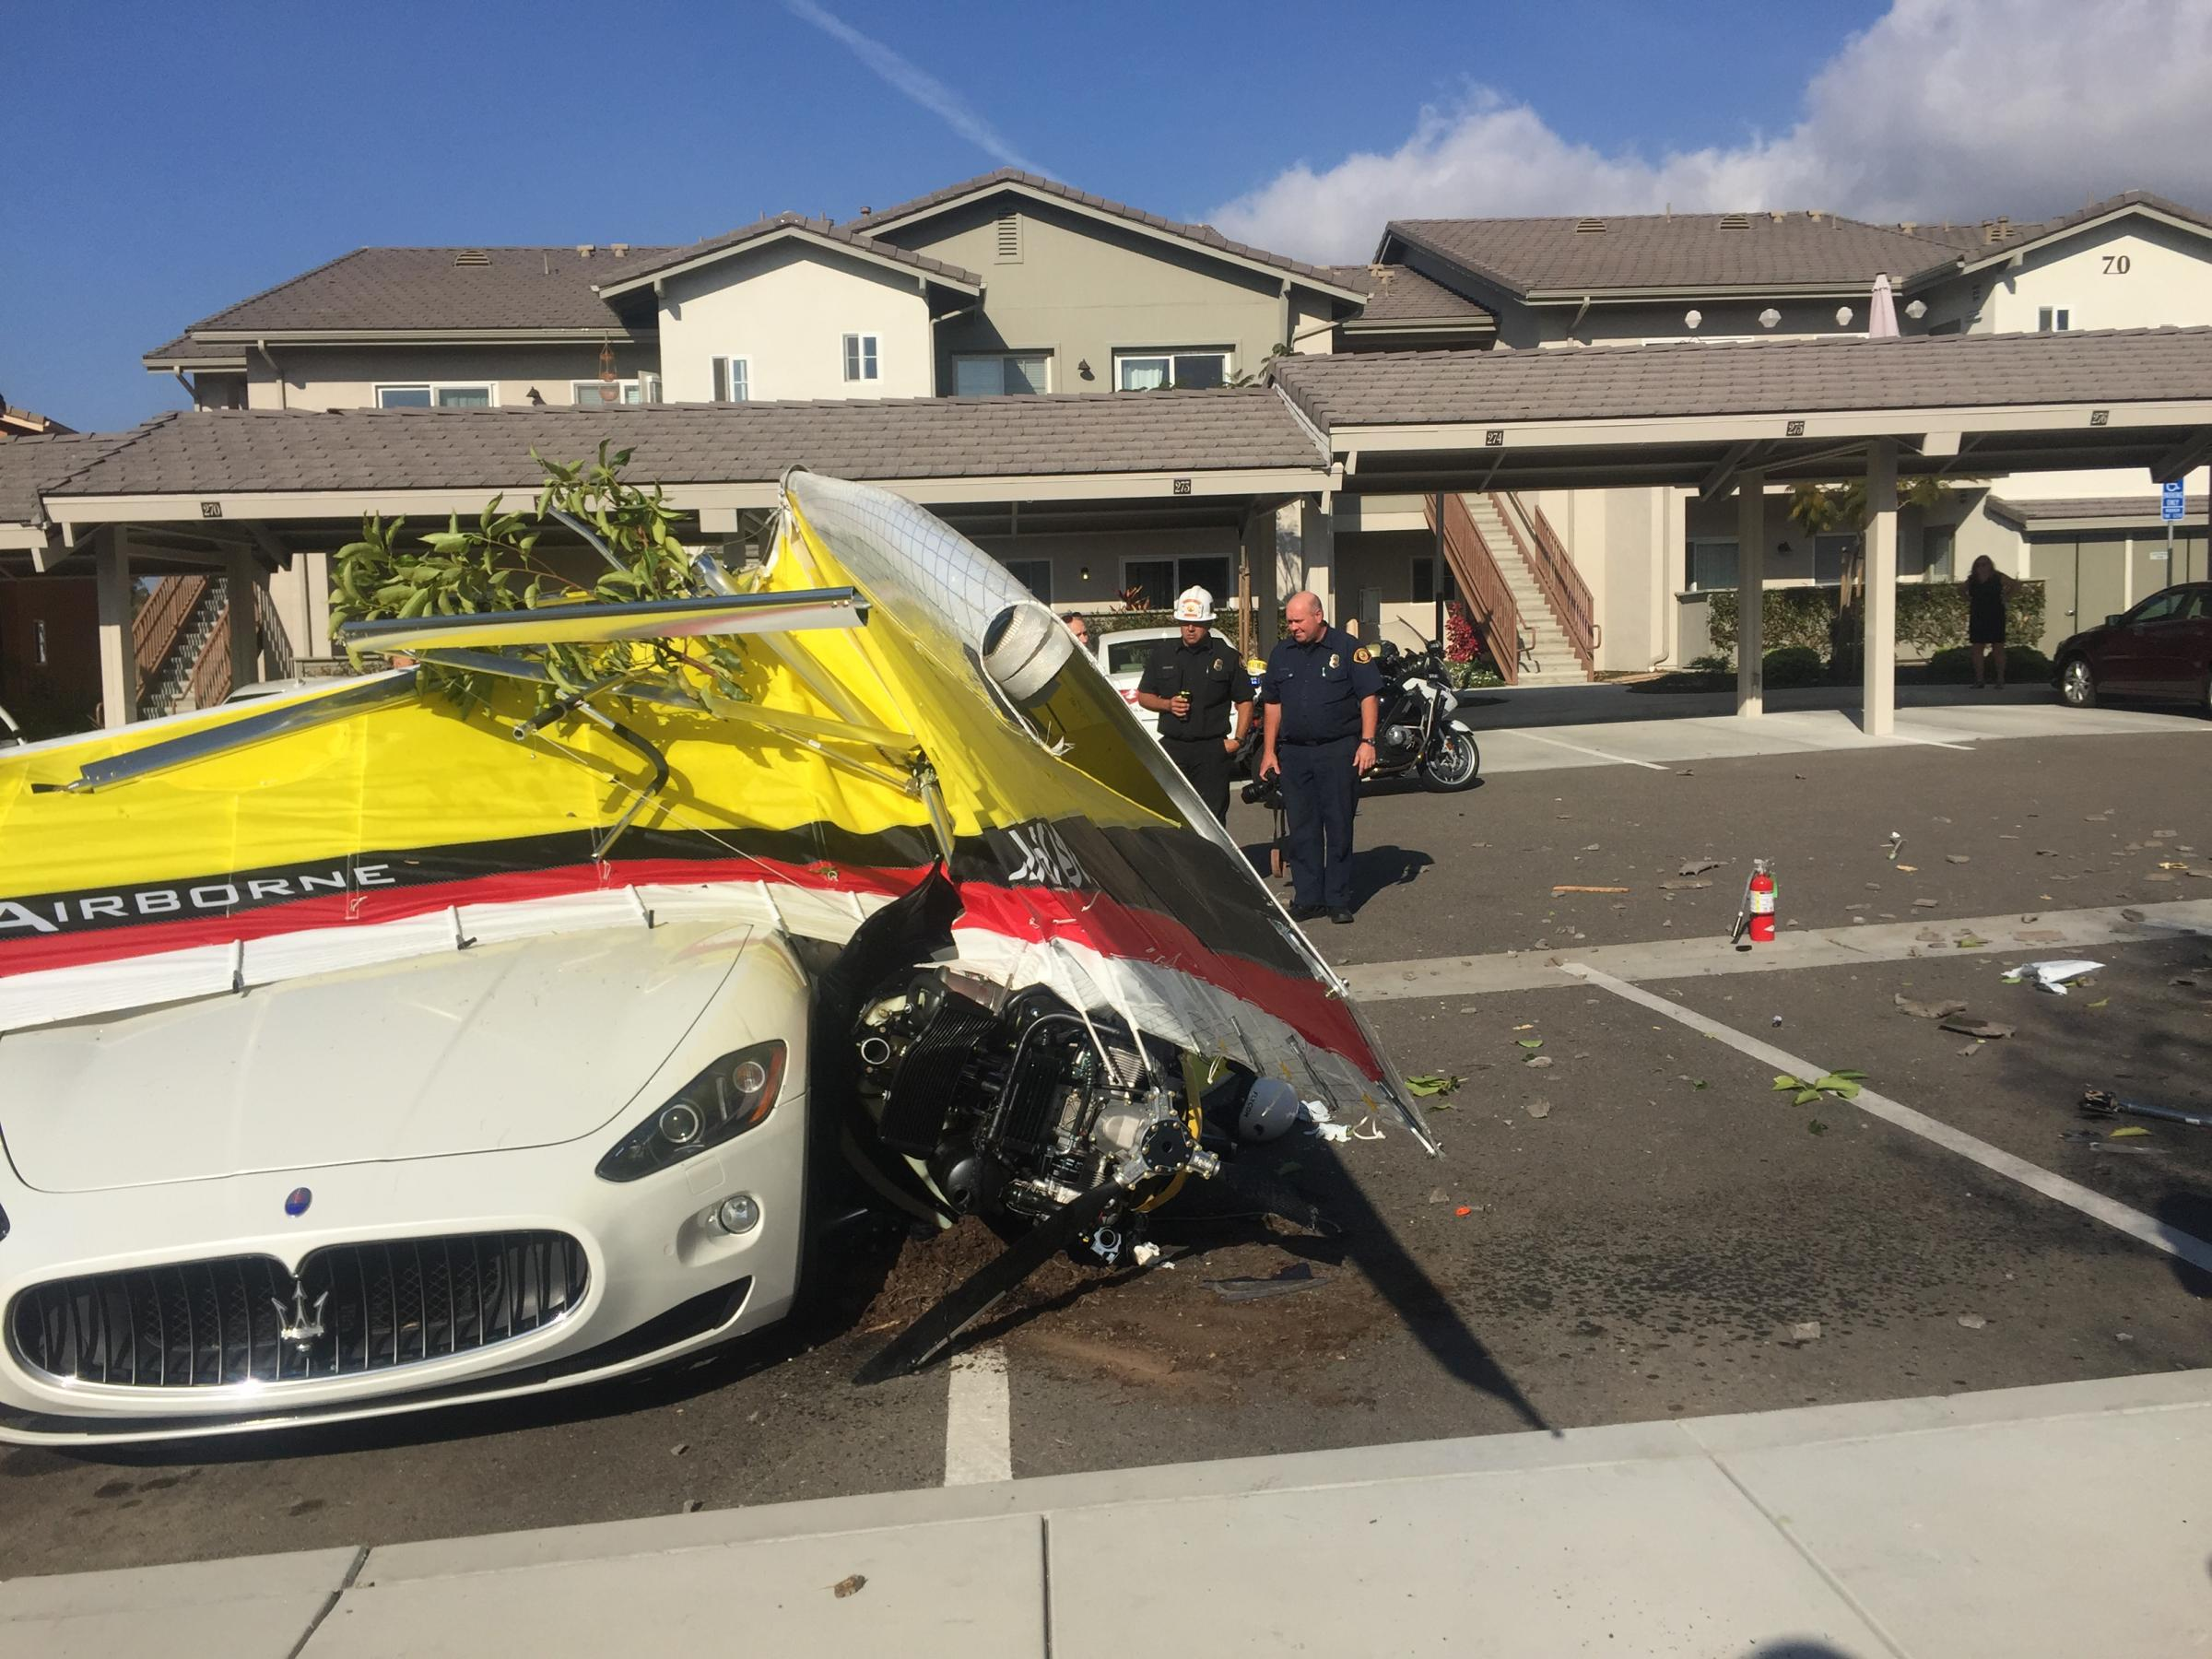 The pilot of a small ultralight aircraft was killed when it crashed shortly after takeoff Tuesday morning from Santa Barbara Airport